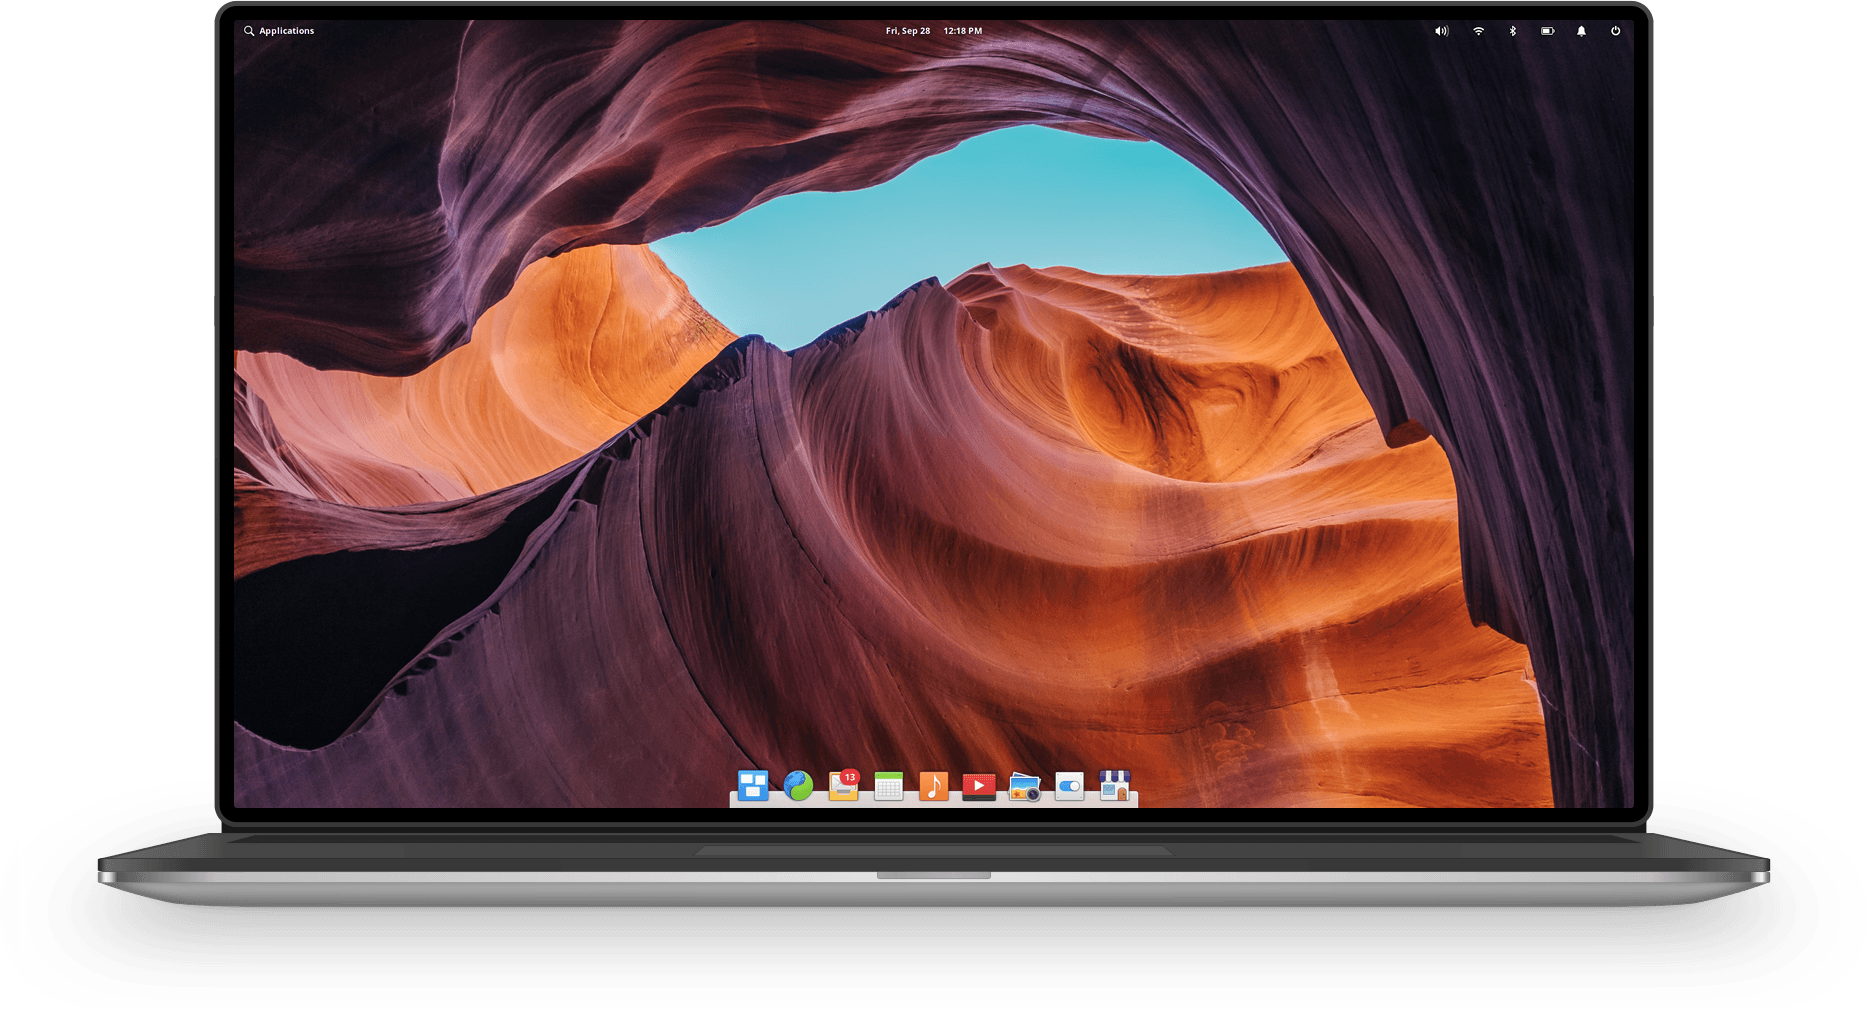 Review: Linux elementary OS on old MacBook - not really